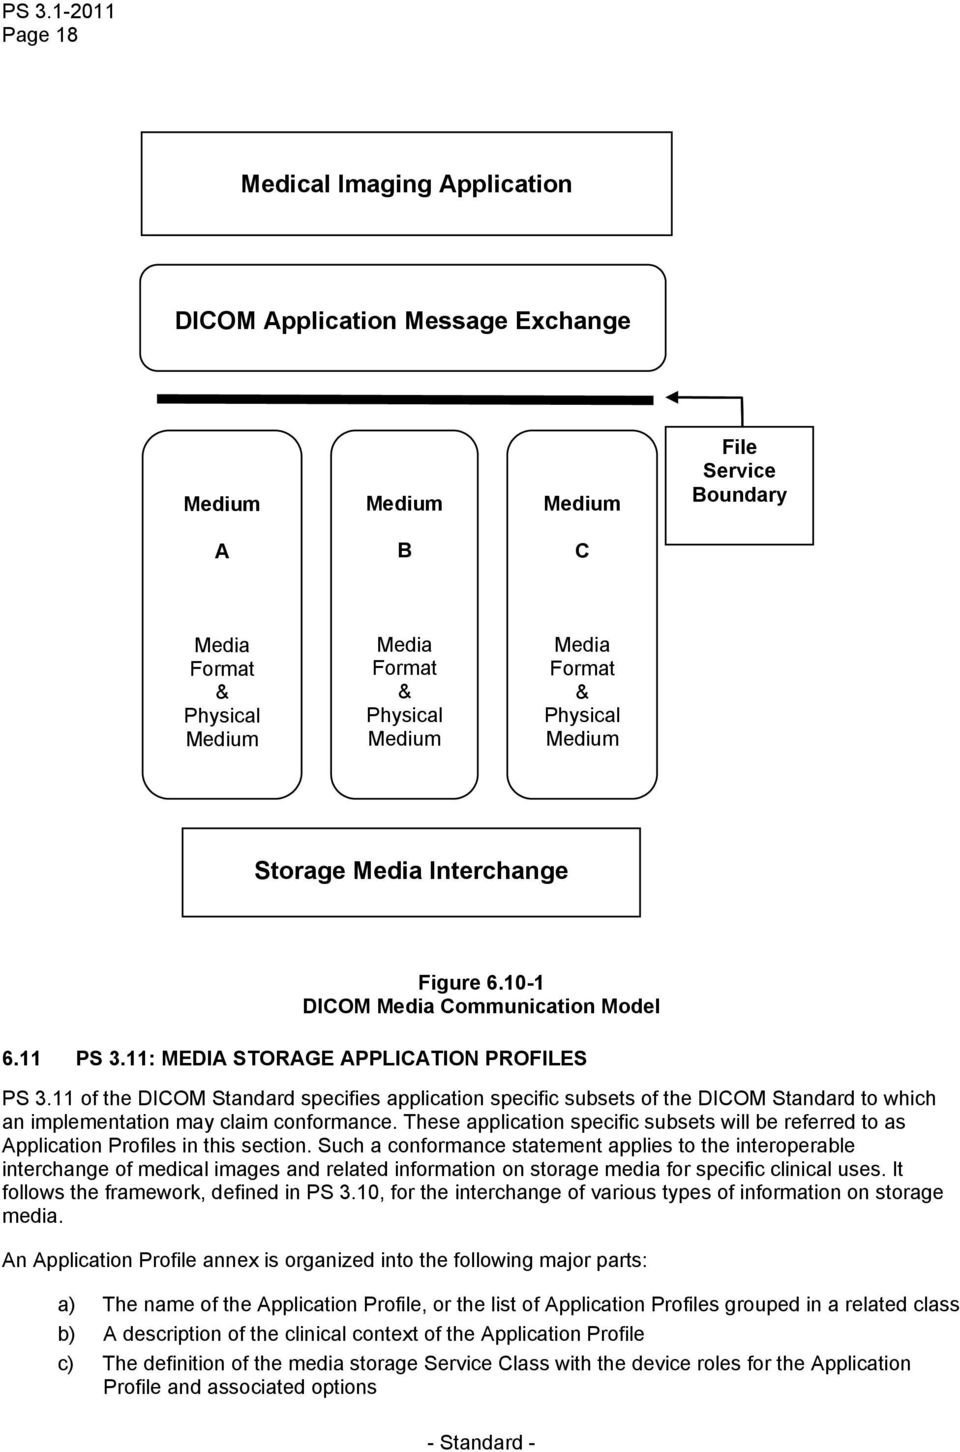 11 of the DICOM Standard specifies application specific subsets of the DICOM Standard to which an implementation may claim conformance.